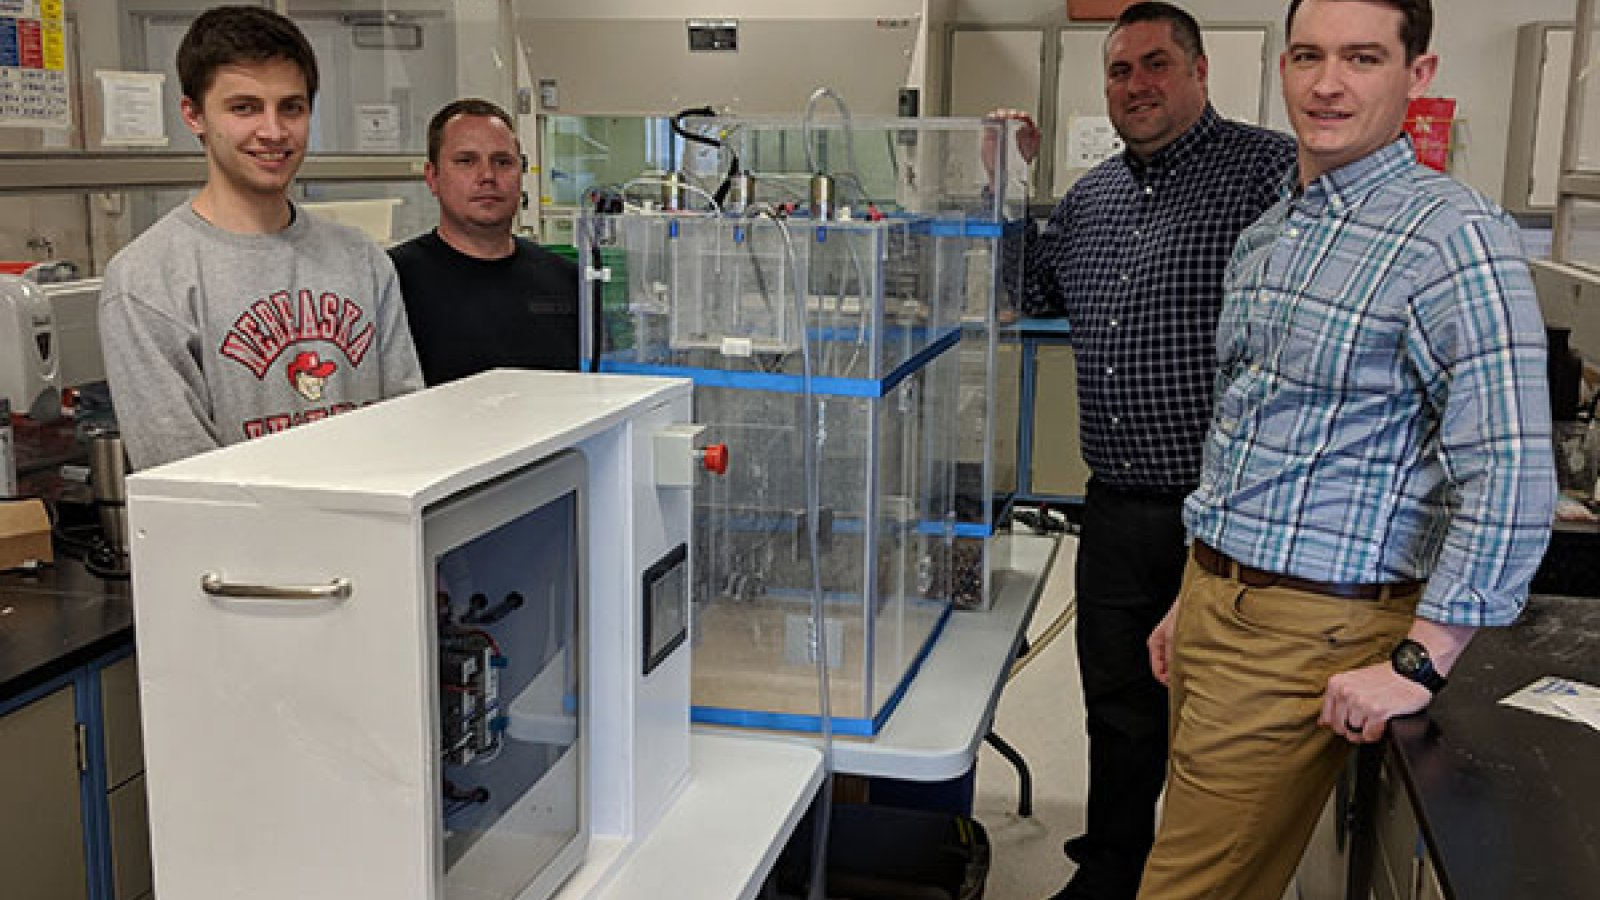 As a unique collaboration between civil engineering and electrical and computer engineering departments - students John Strudl (left), Derek Nelsen (second from left), Jacob Eckstrom (right) and Isaac Knutson (not pictured) and senior design instructor George Hunt (second from right), assistant professor of practice in civil engineering - created a working model of a water treatment plant that could be used for K-12 and general public outreach.